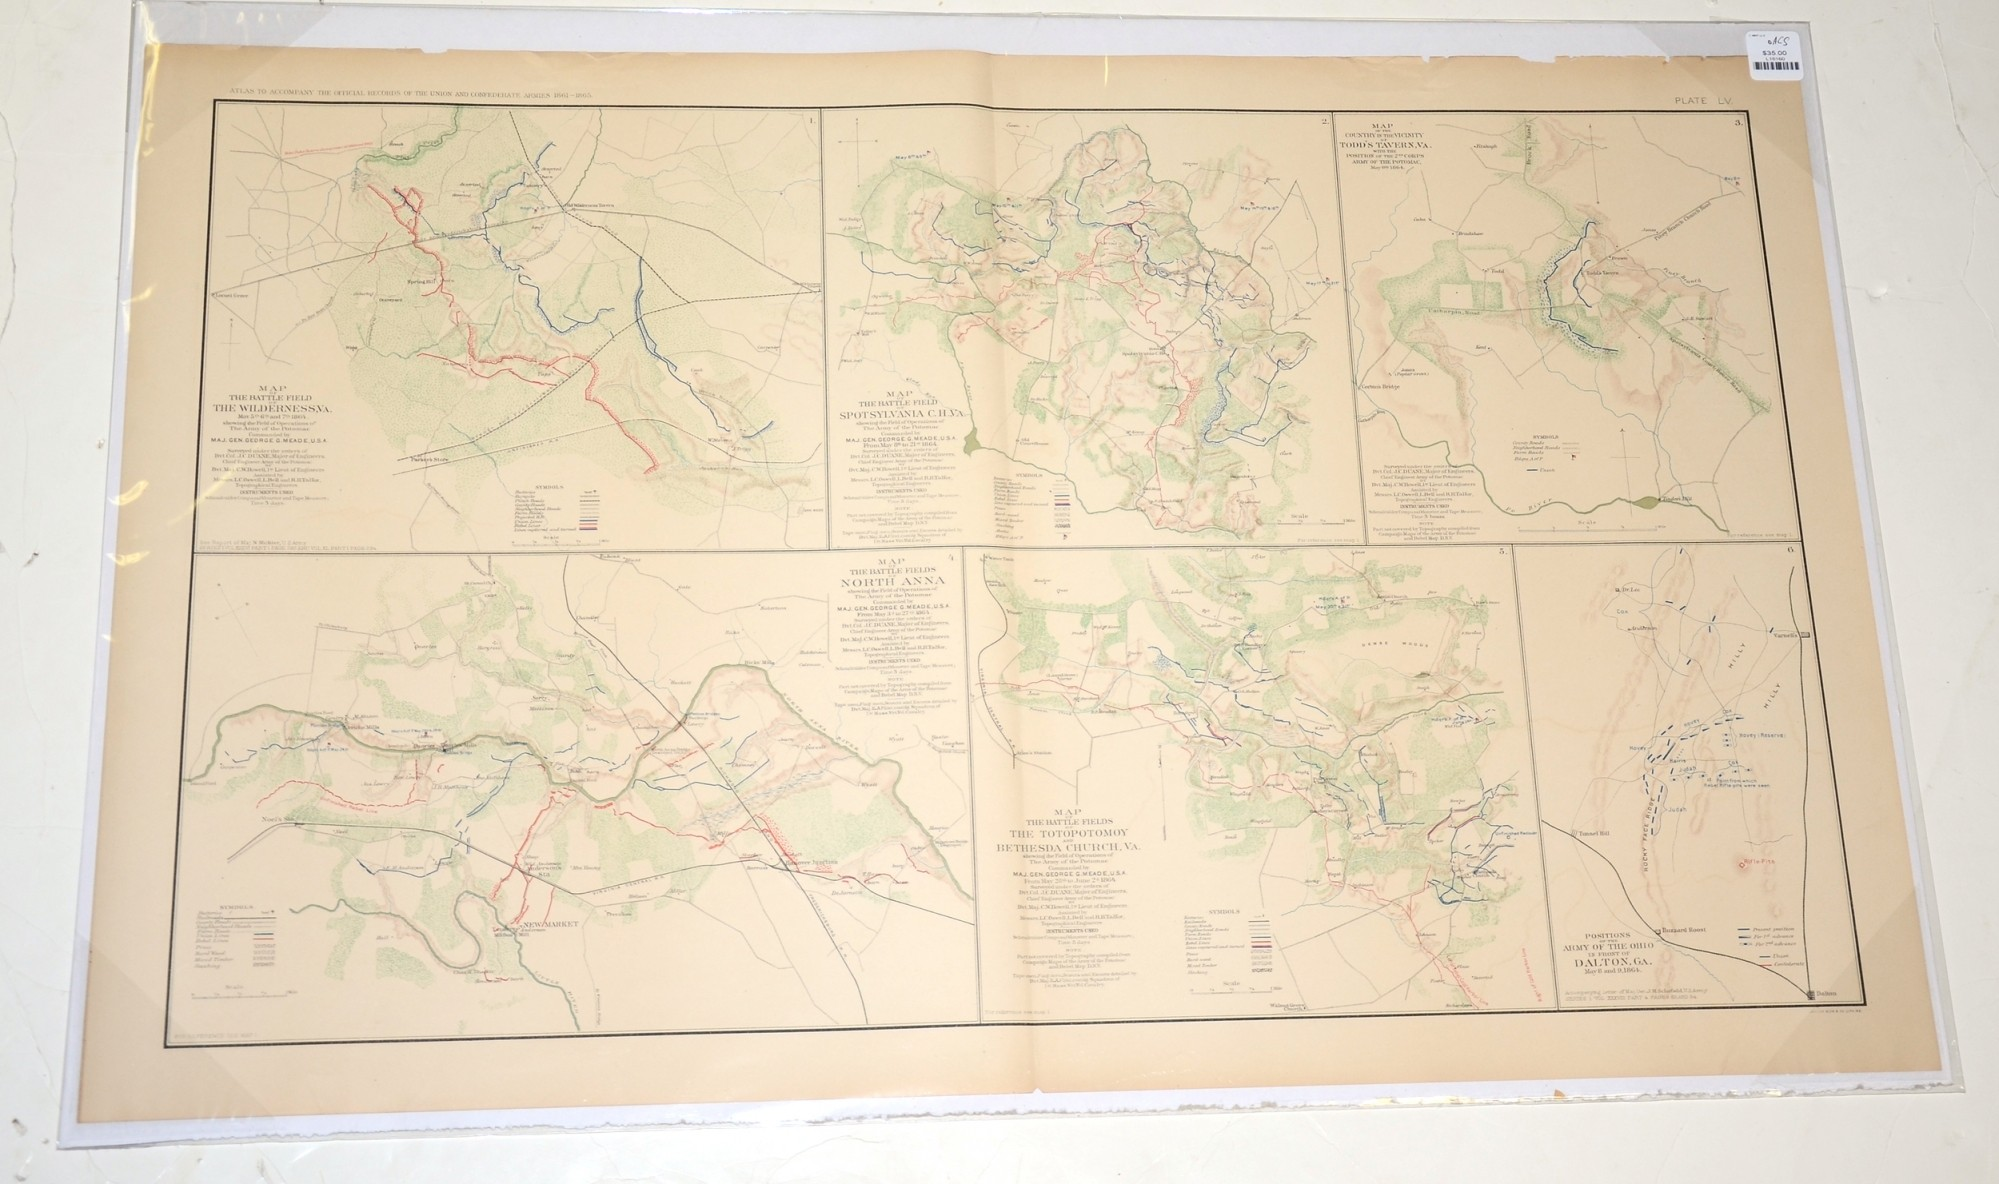 MAPS OF WILDERNESS, VA., SPOTSYLVANIA, TODD'S TAVERN, NORTH ANNA, AND TOTOPOTOMOY AND BETHESDA CHURCH FROM ATLAS OF OFFICIAL RECORDS